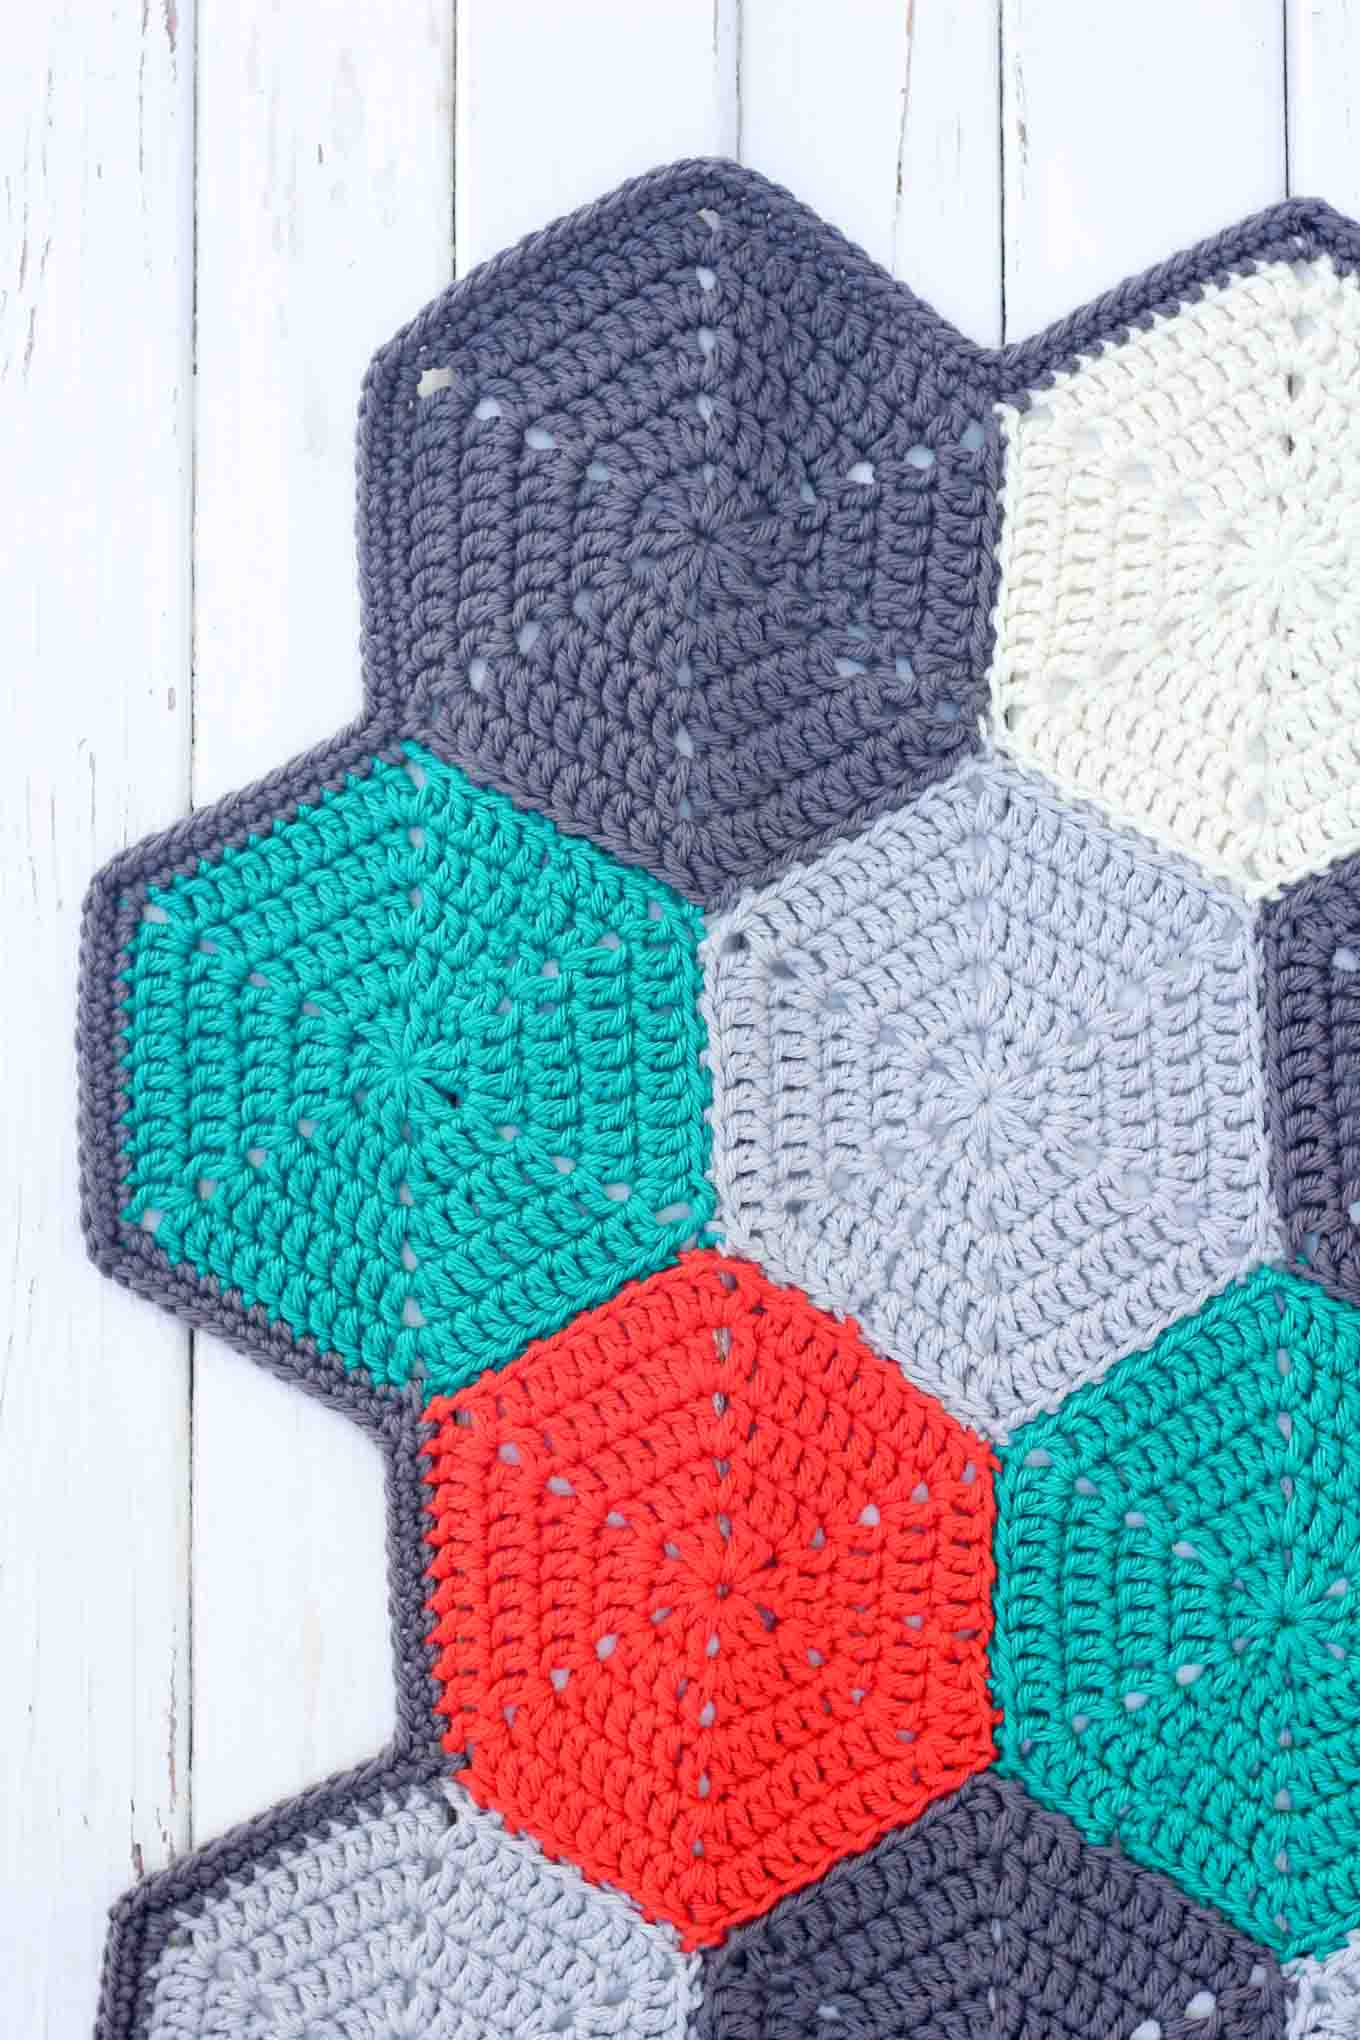 Crochet Afghan Blanket Hexagon Pattern - Crochet blanket patterns